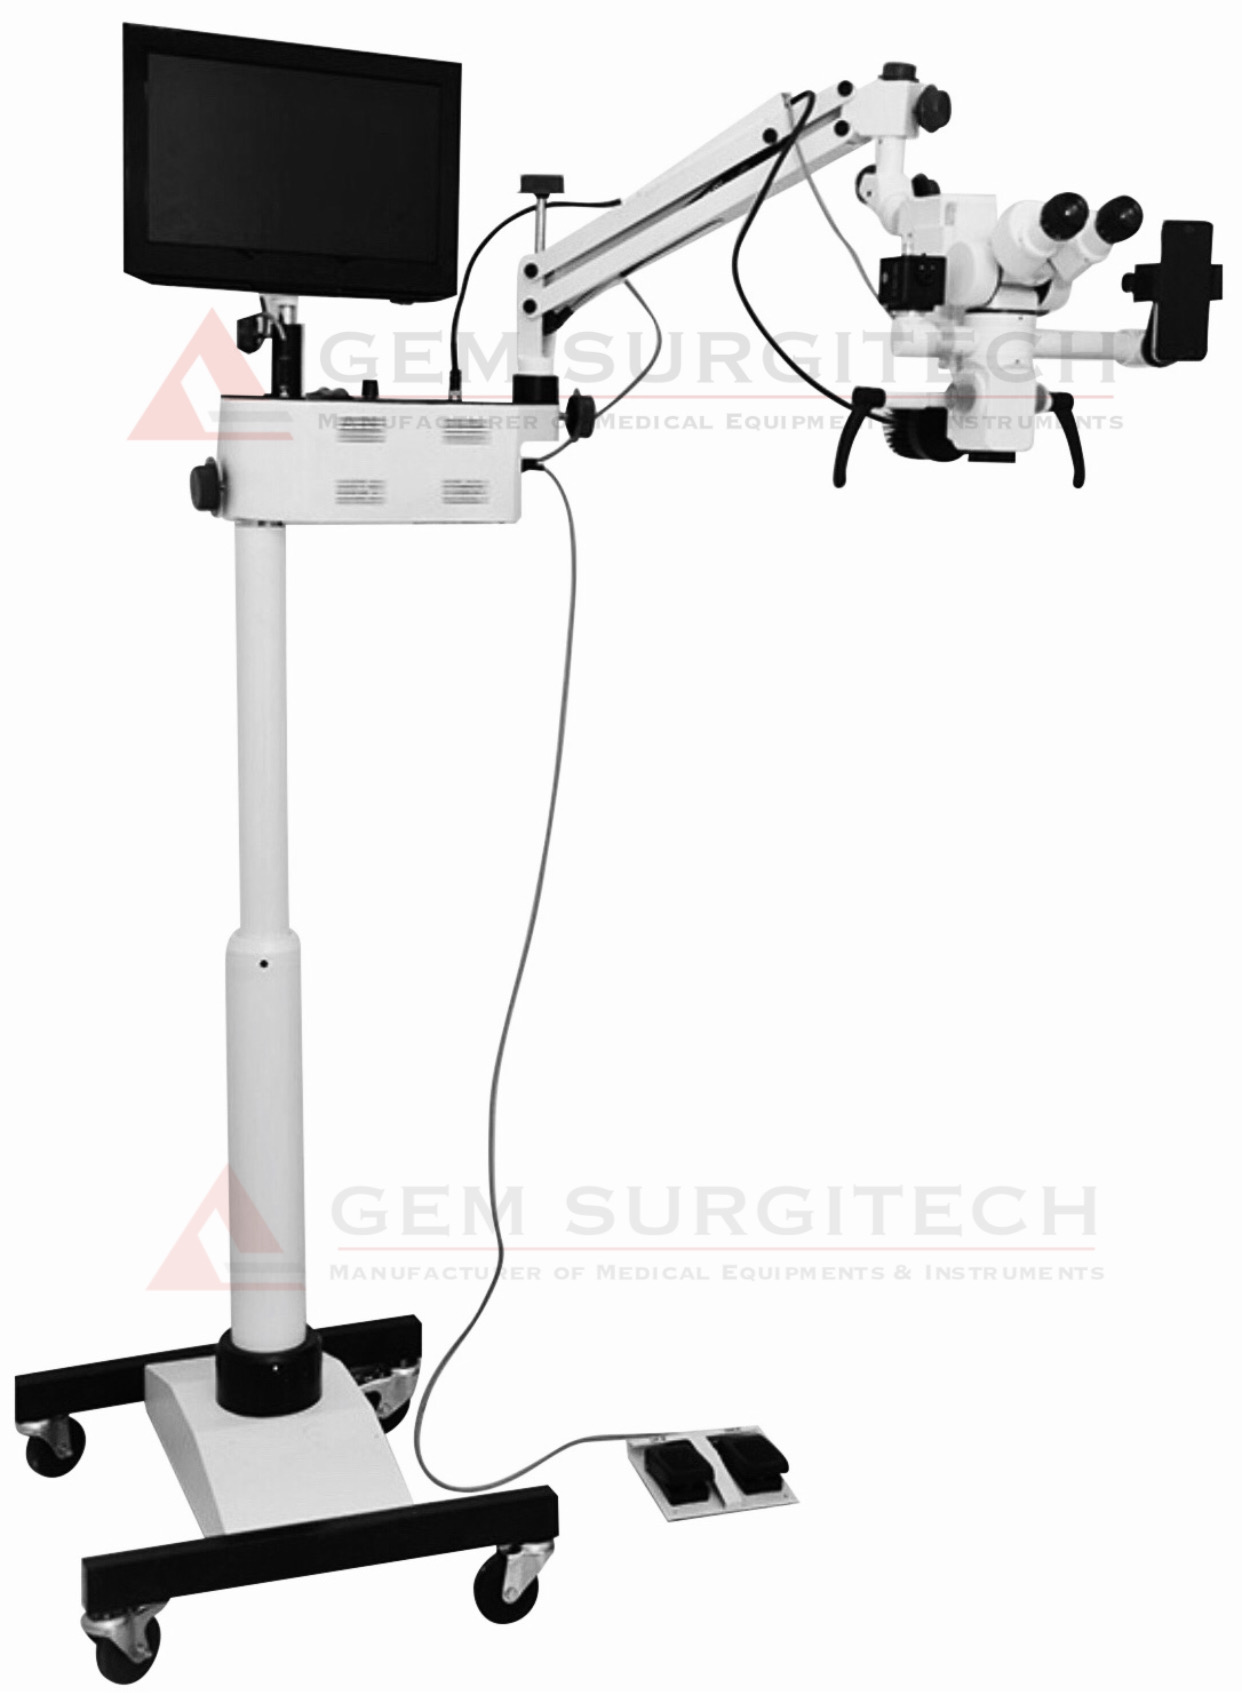 Surgical Microscope Gem Surgitech